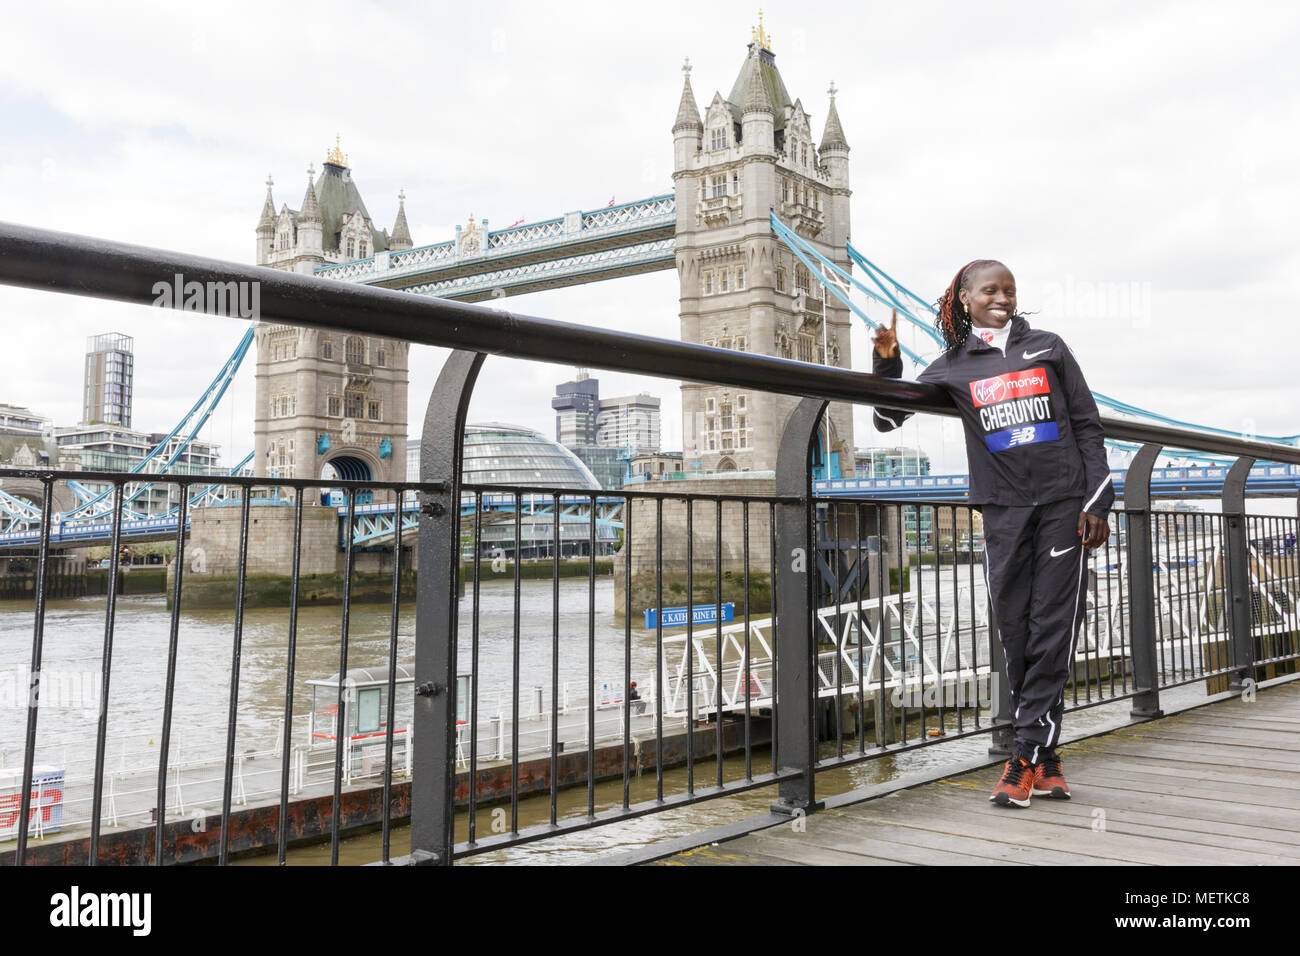 London, 23rd April 2018. The elite women's race winner, Vivian Cheruiyot  (Kenya, 02:18:31)poses at the Virgin London Marathon 2018 champions photocall.  Cheruiyot is a track and cross-country running specialist who made her London Marathon debut in 2017 Credit: Imageplotter News and Sports/Alamy Live News Stock Photo